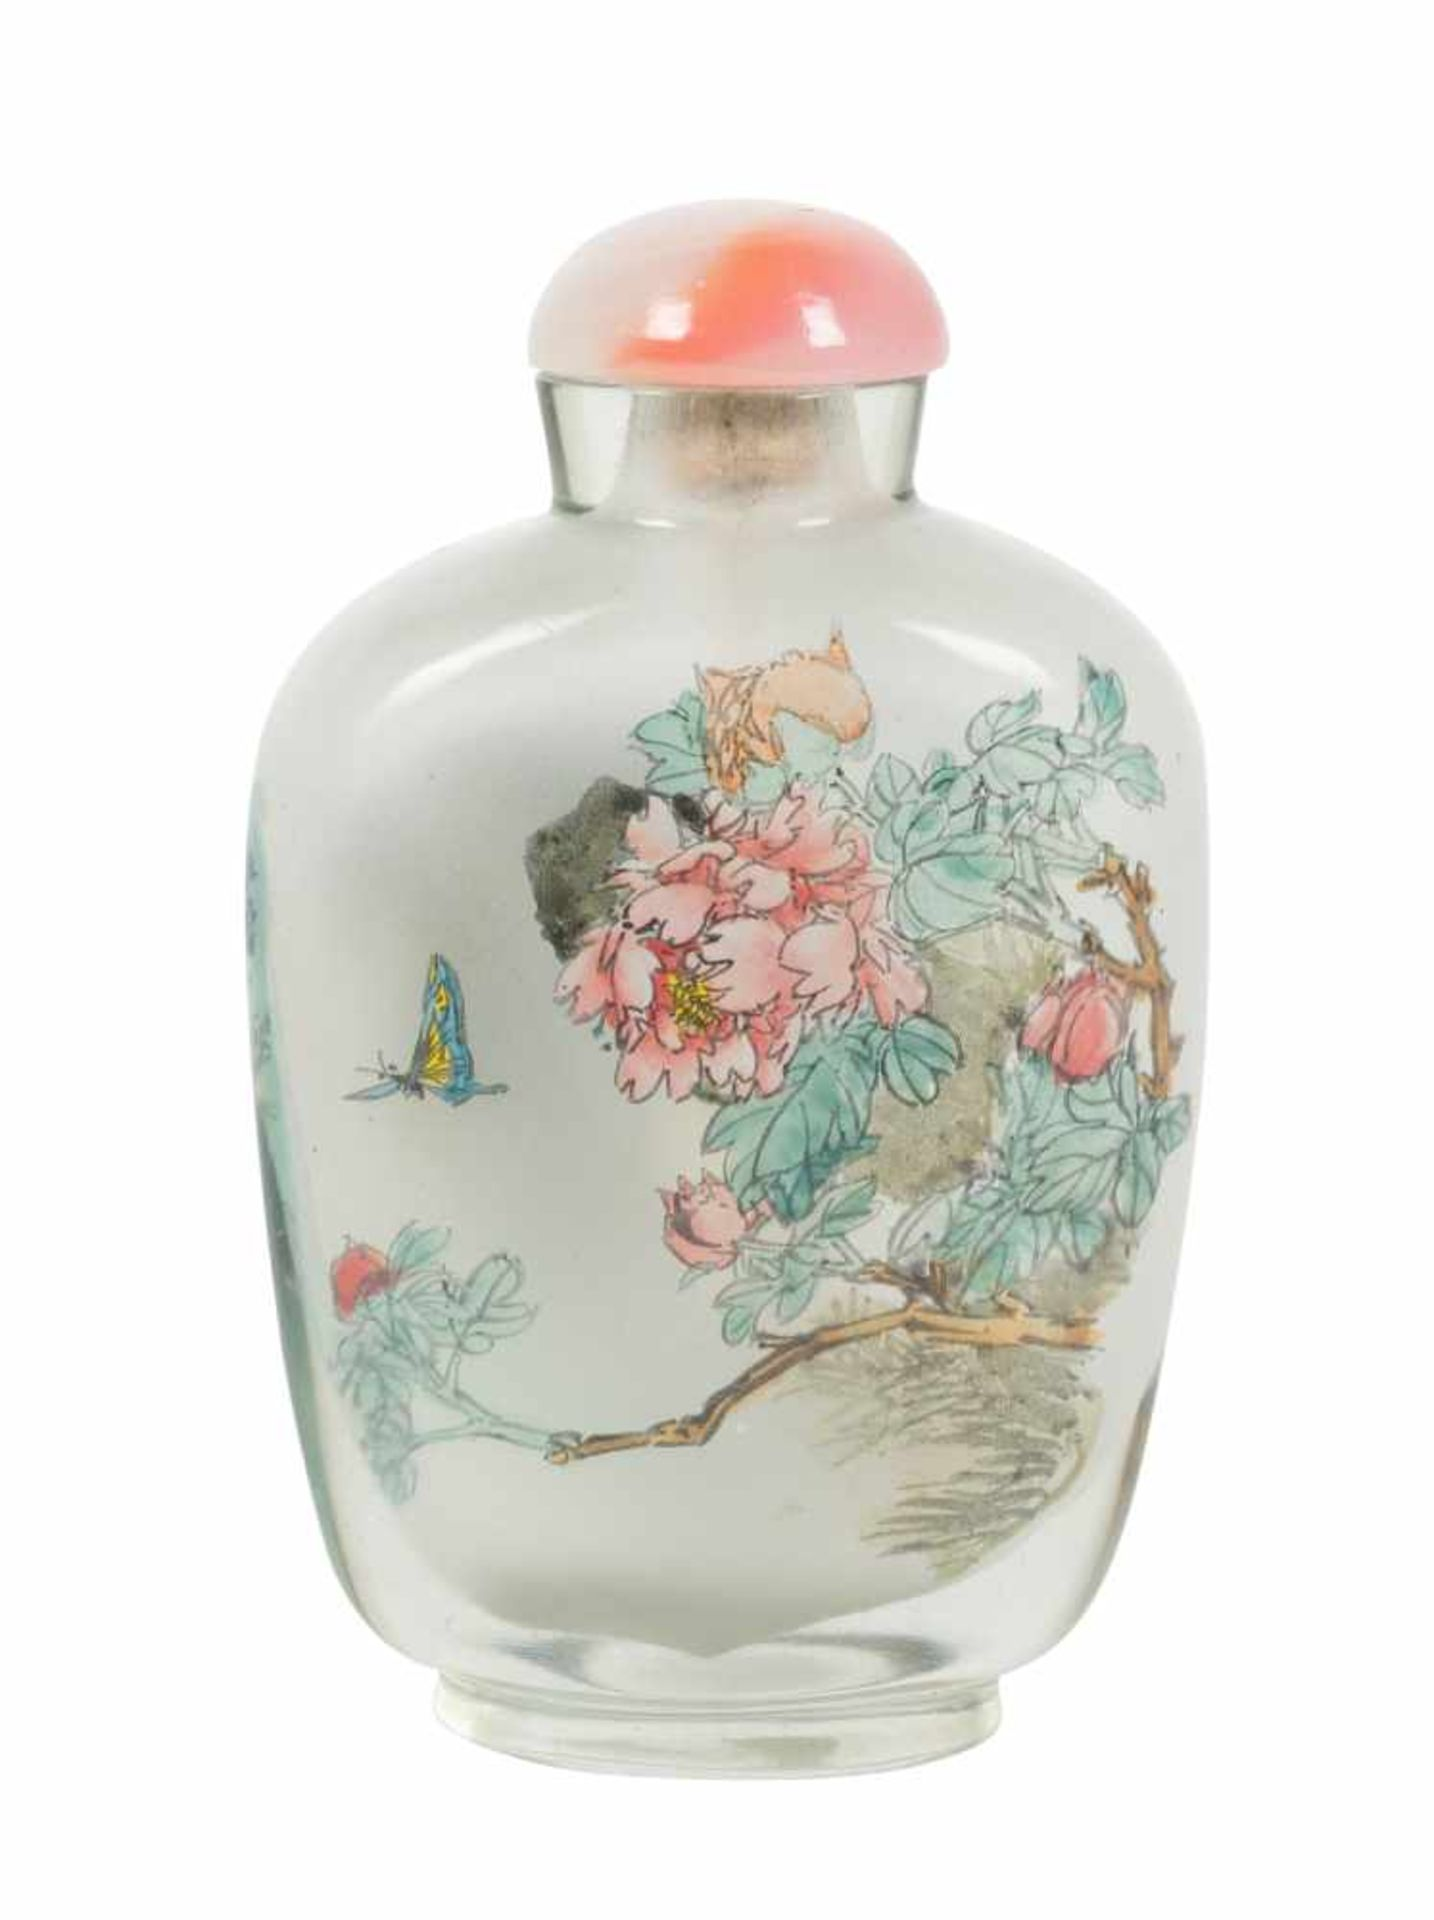 Los 28 - An inside painted glass snuff bottle with a rose quartz stopper. China. Qing dynasty. Early 20th